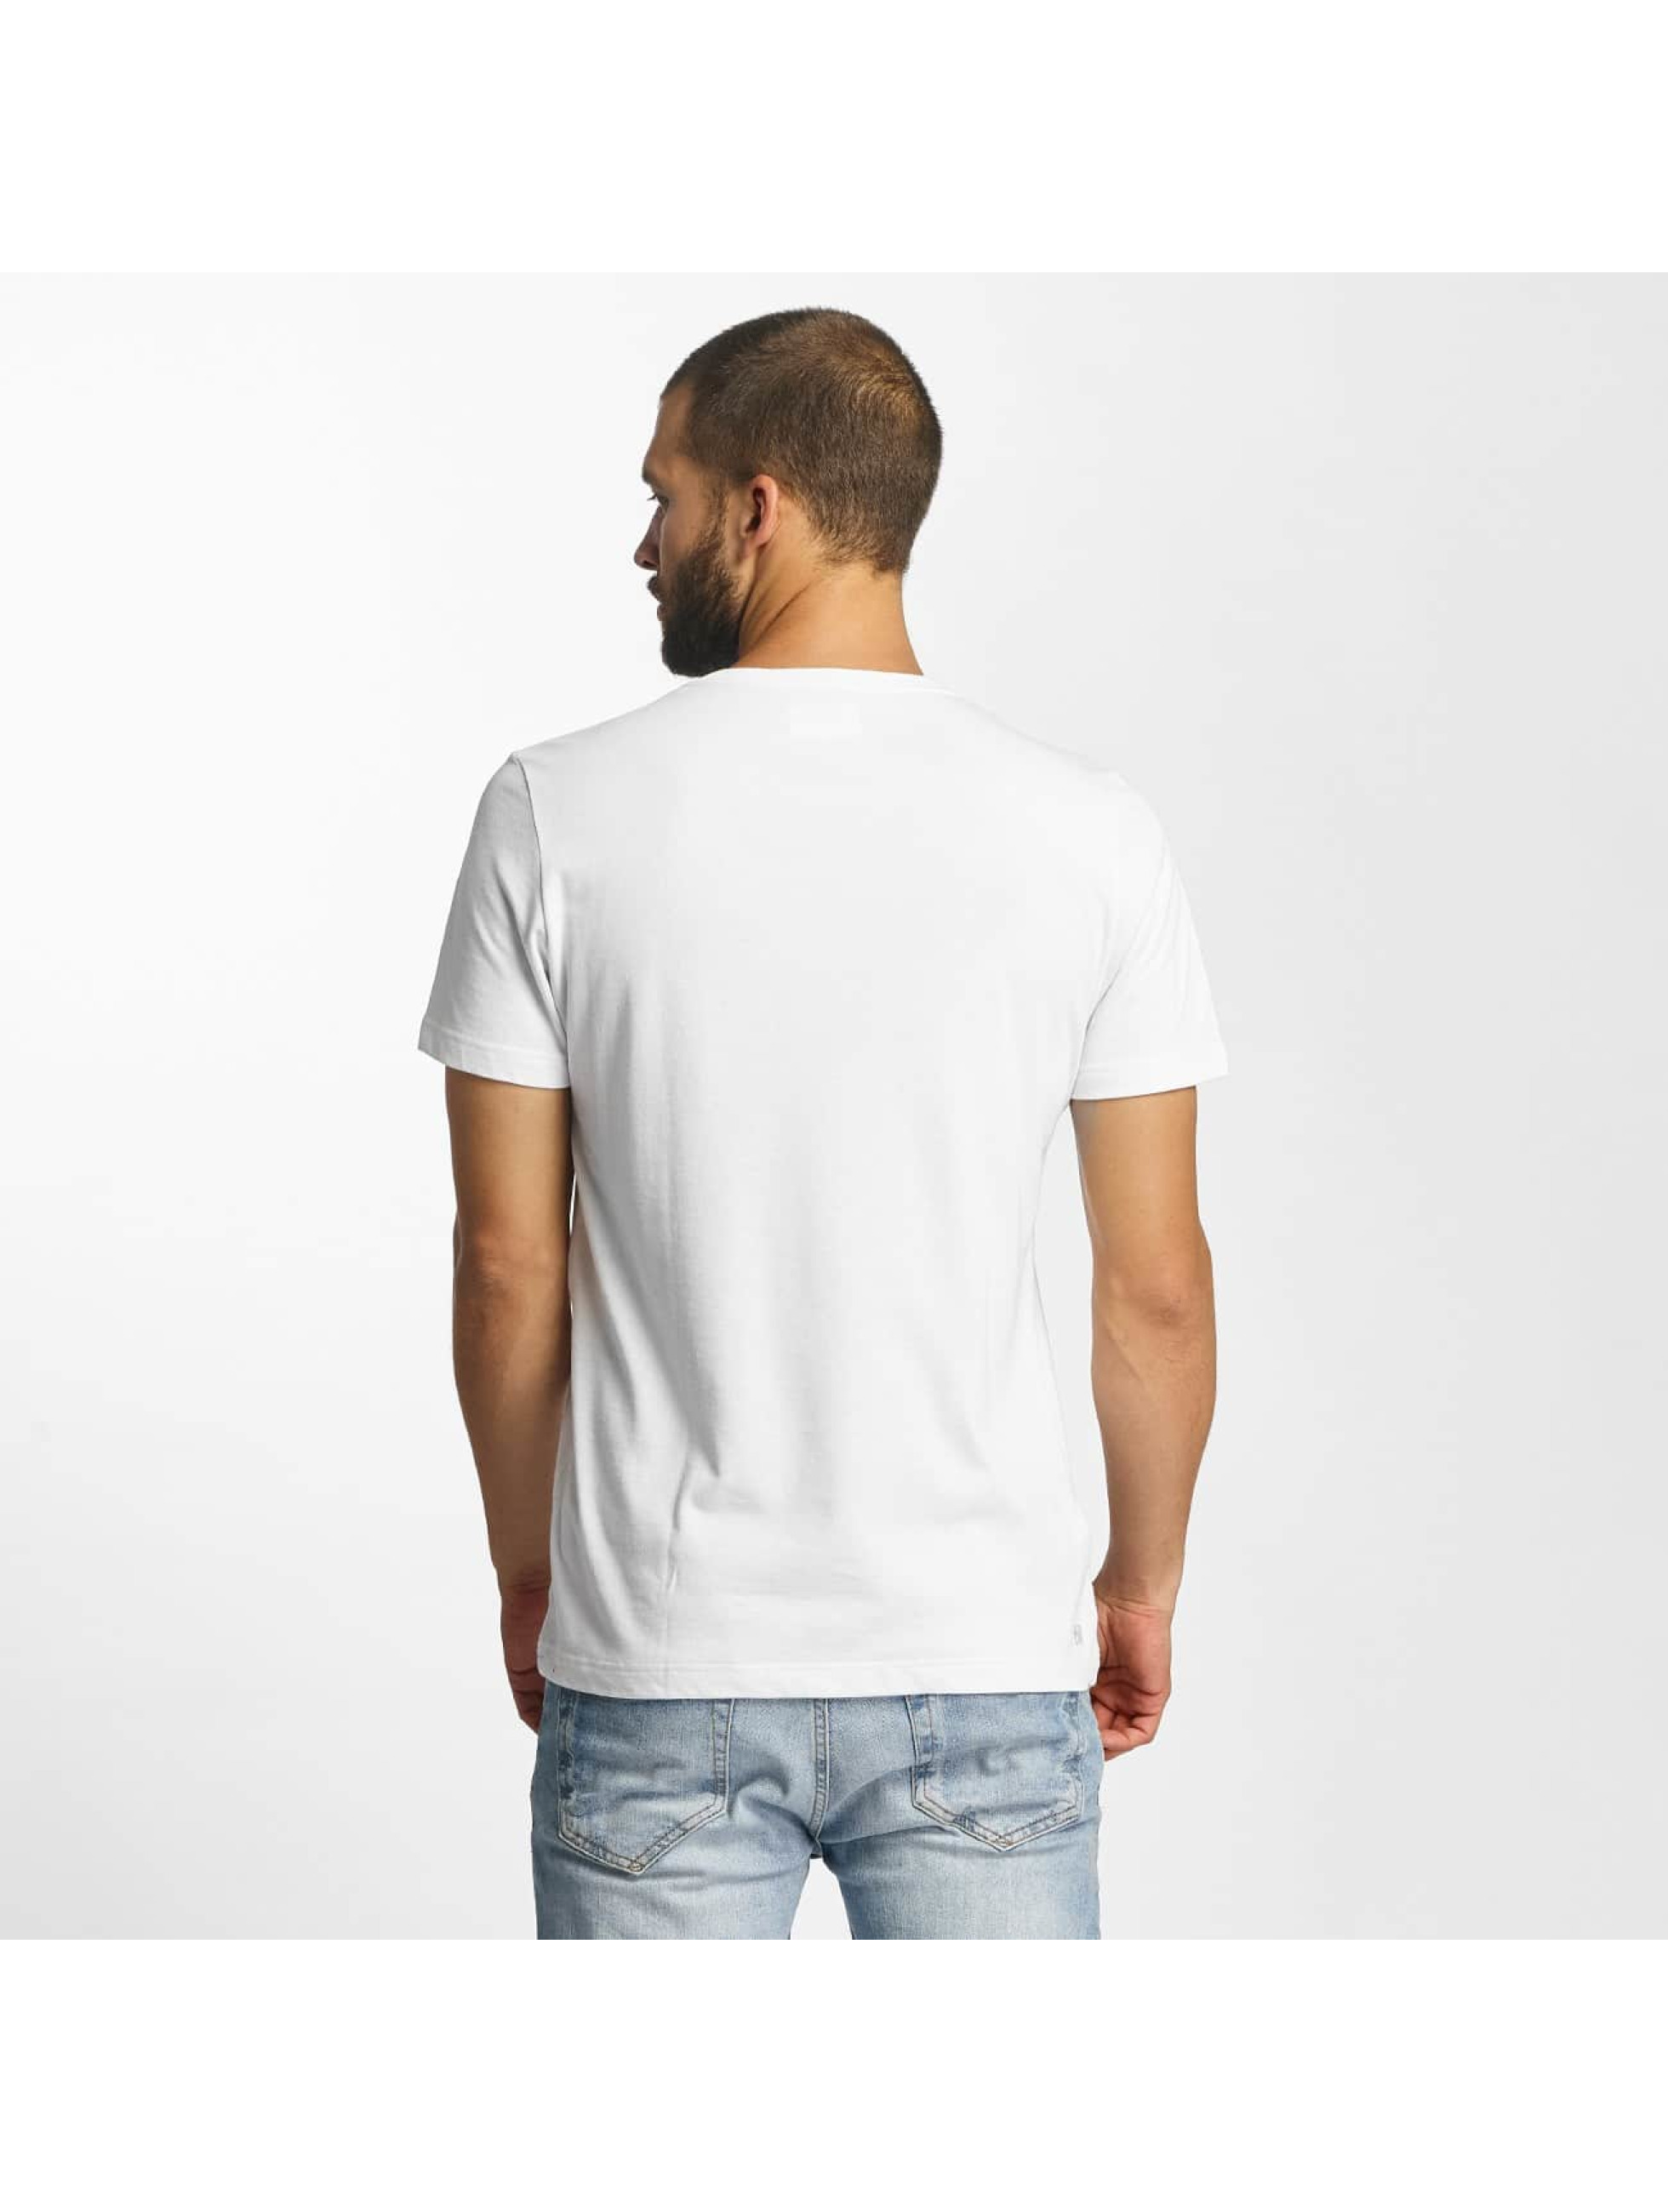 Lacoste Classic T-Shirt Kroko white